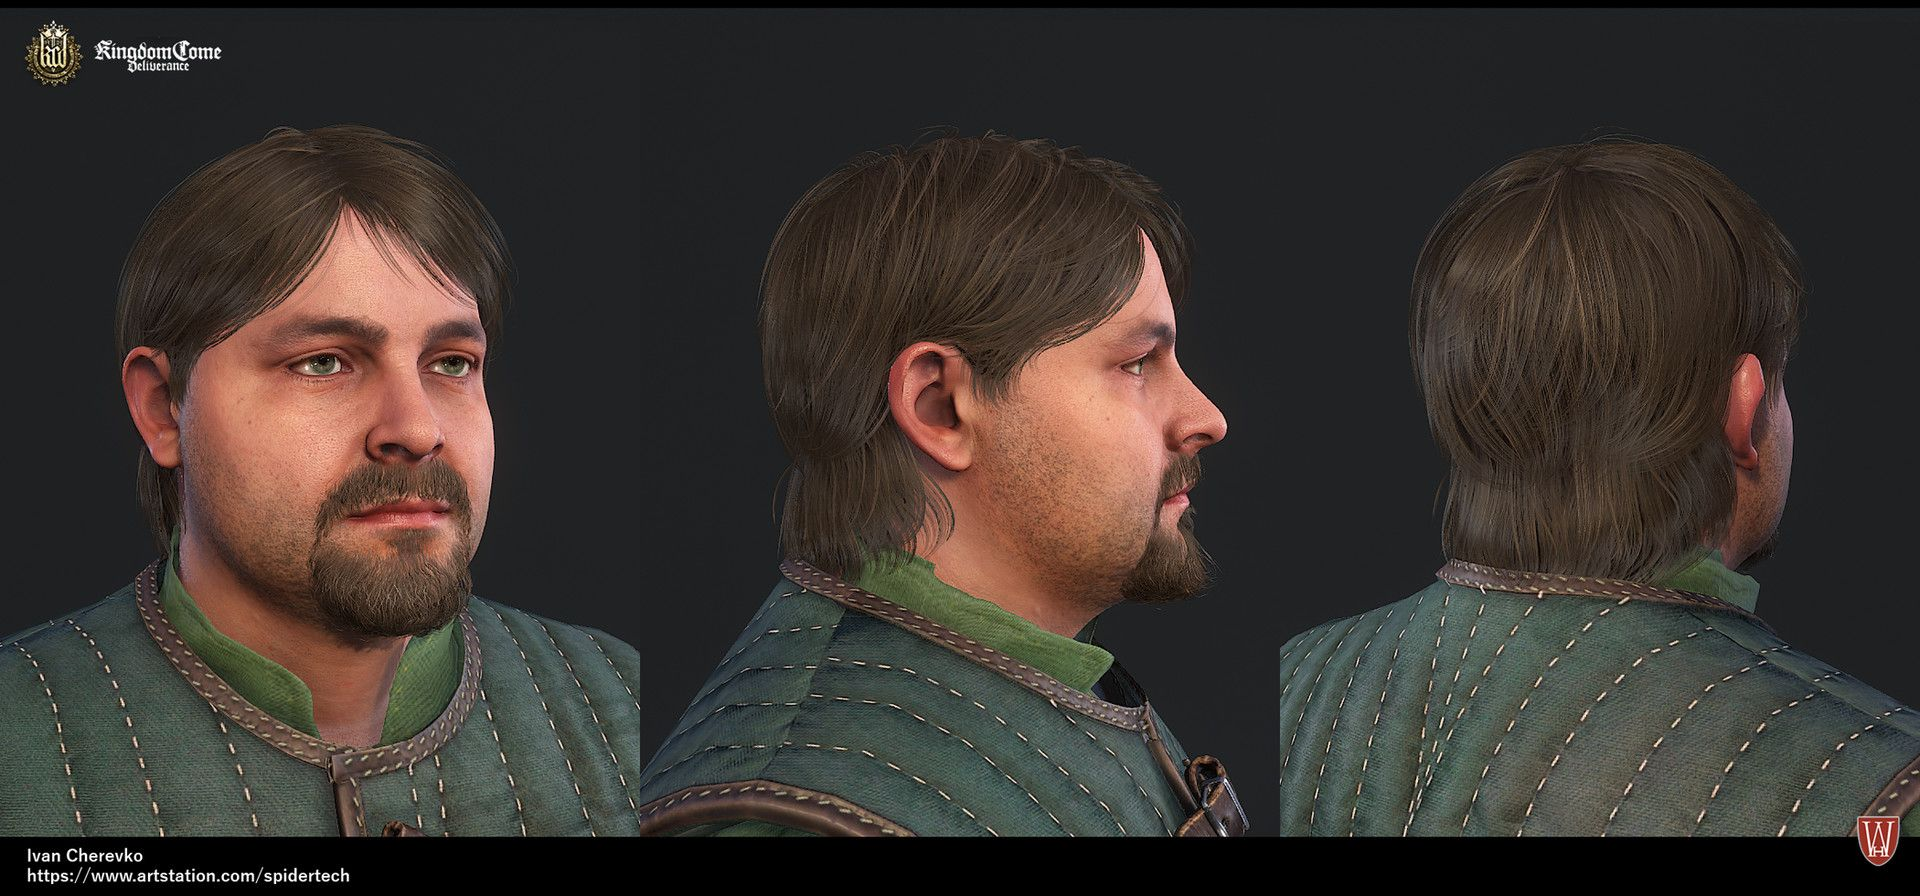 artstation - kingdom come: deliverance low poly haircuts and beards